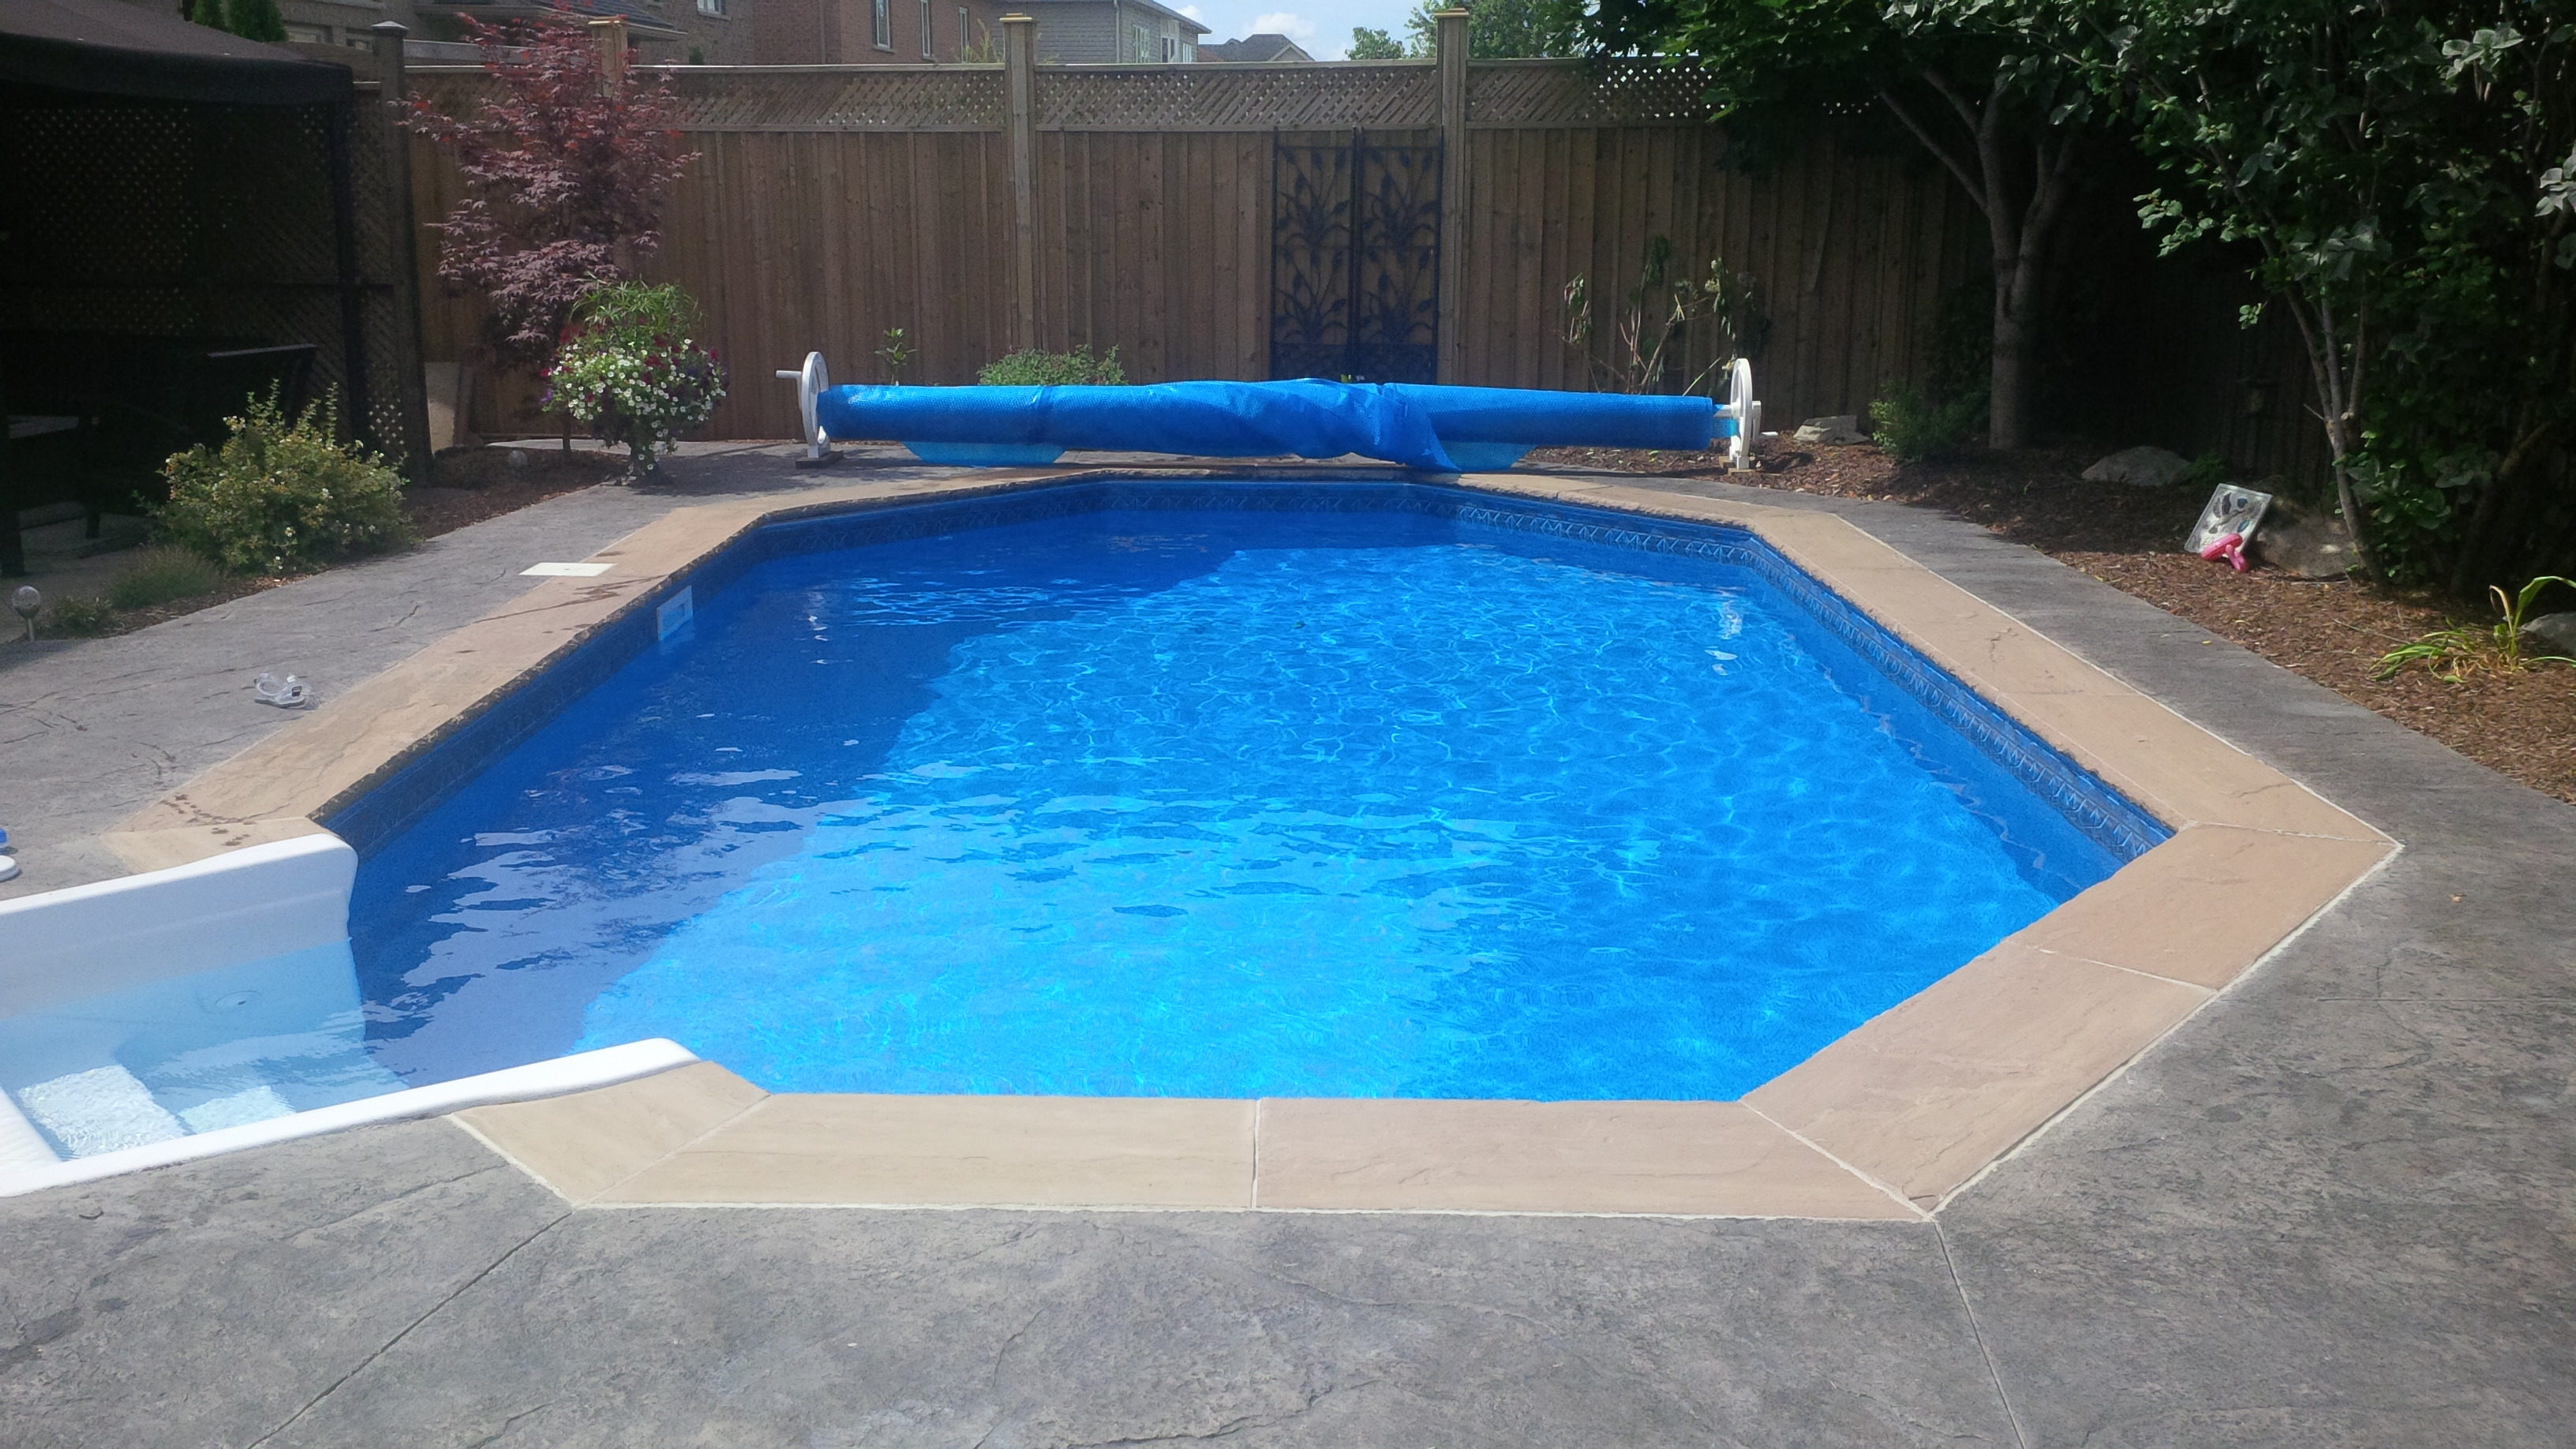 Pool gallery smart pools beautiful affordable on for Pool gallery